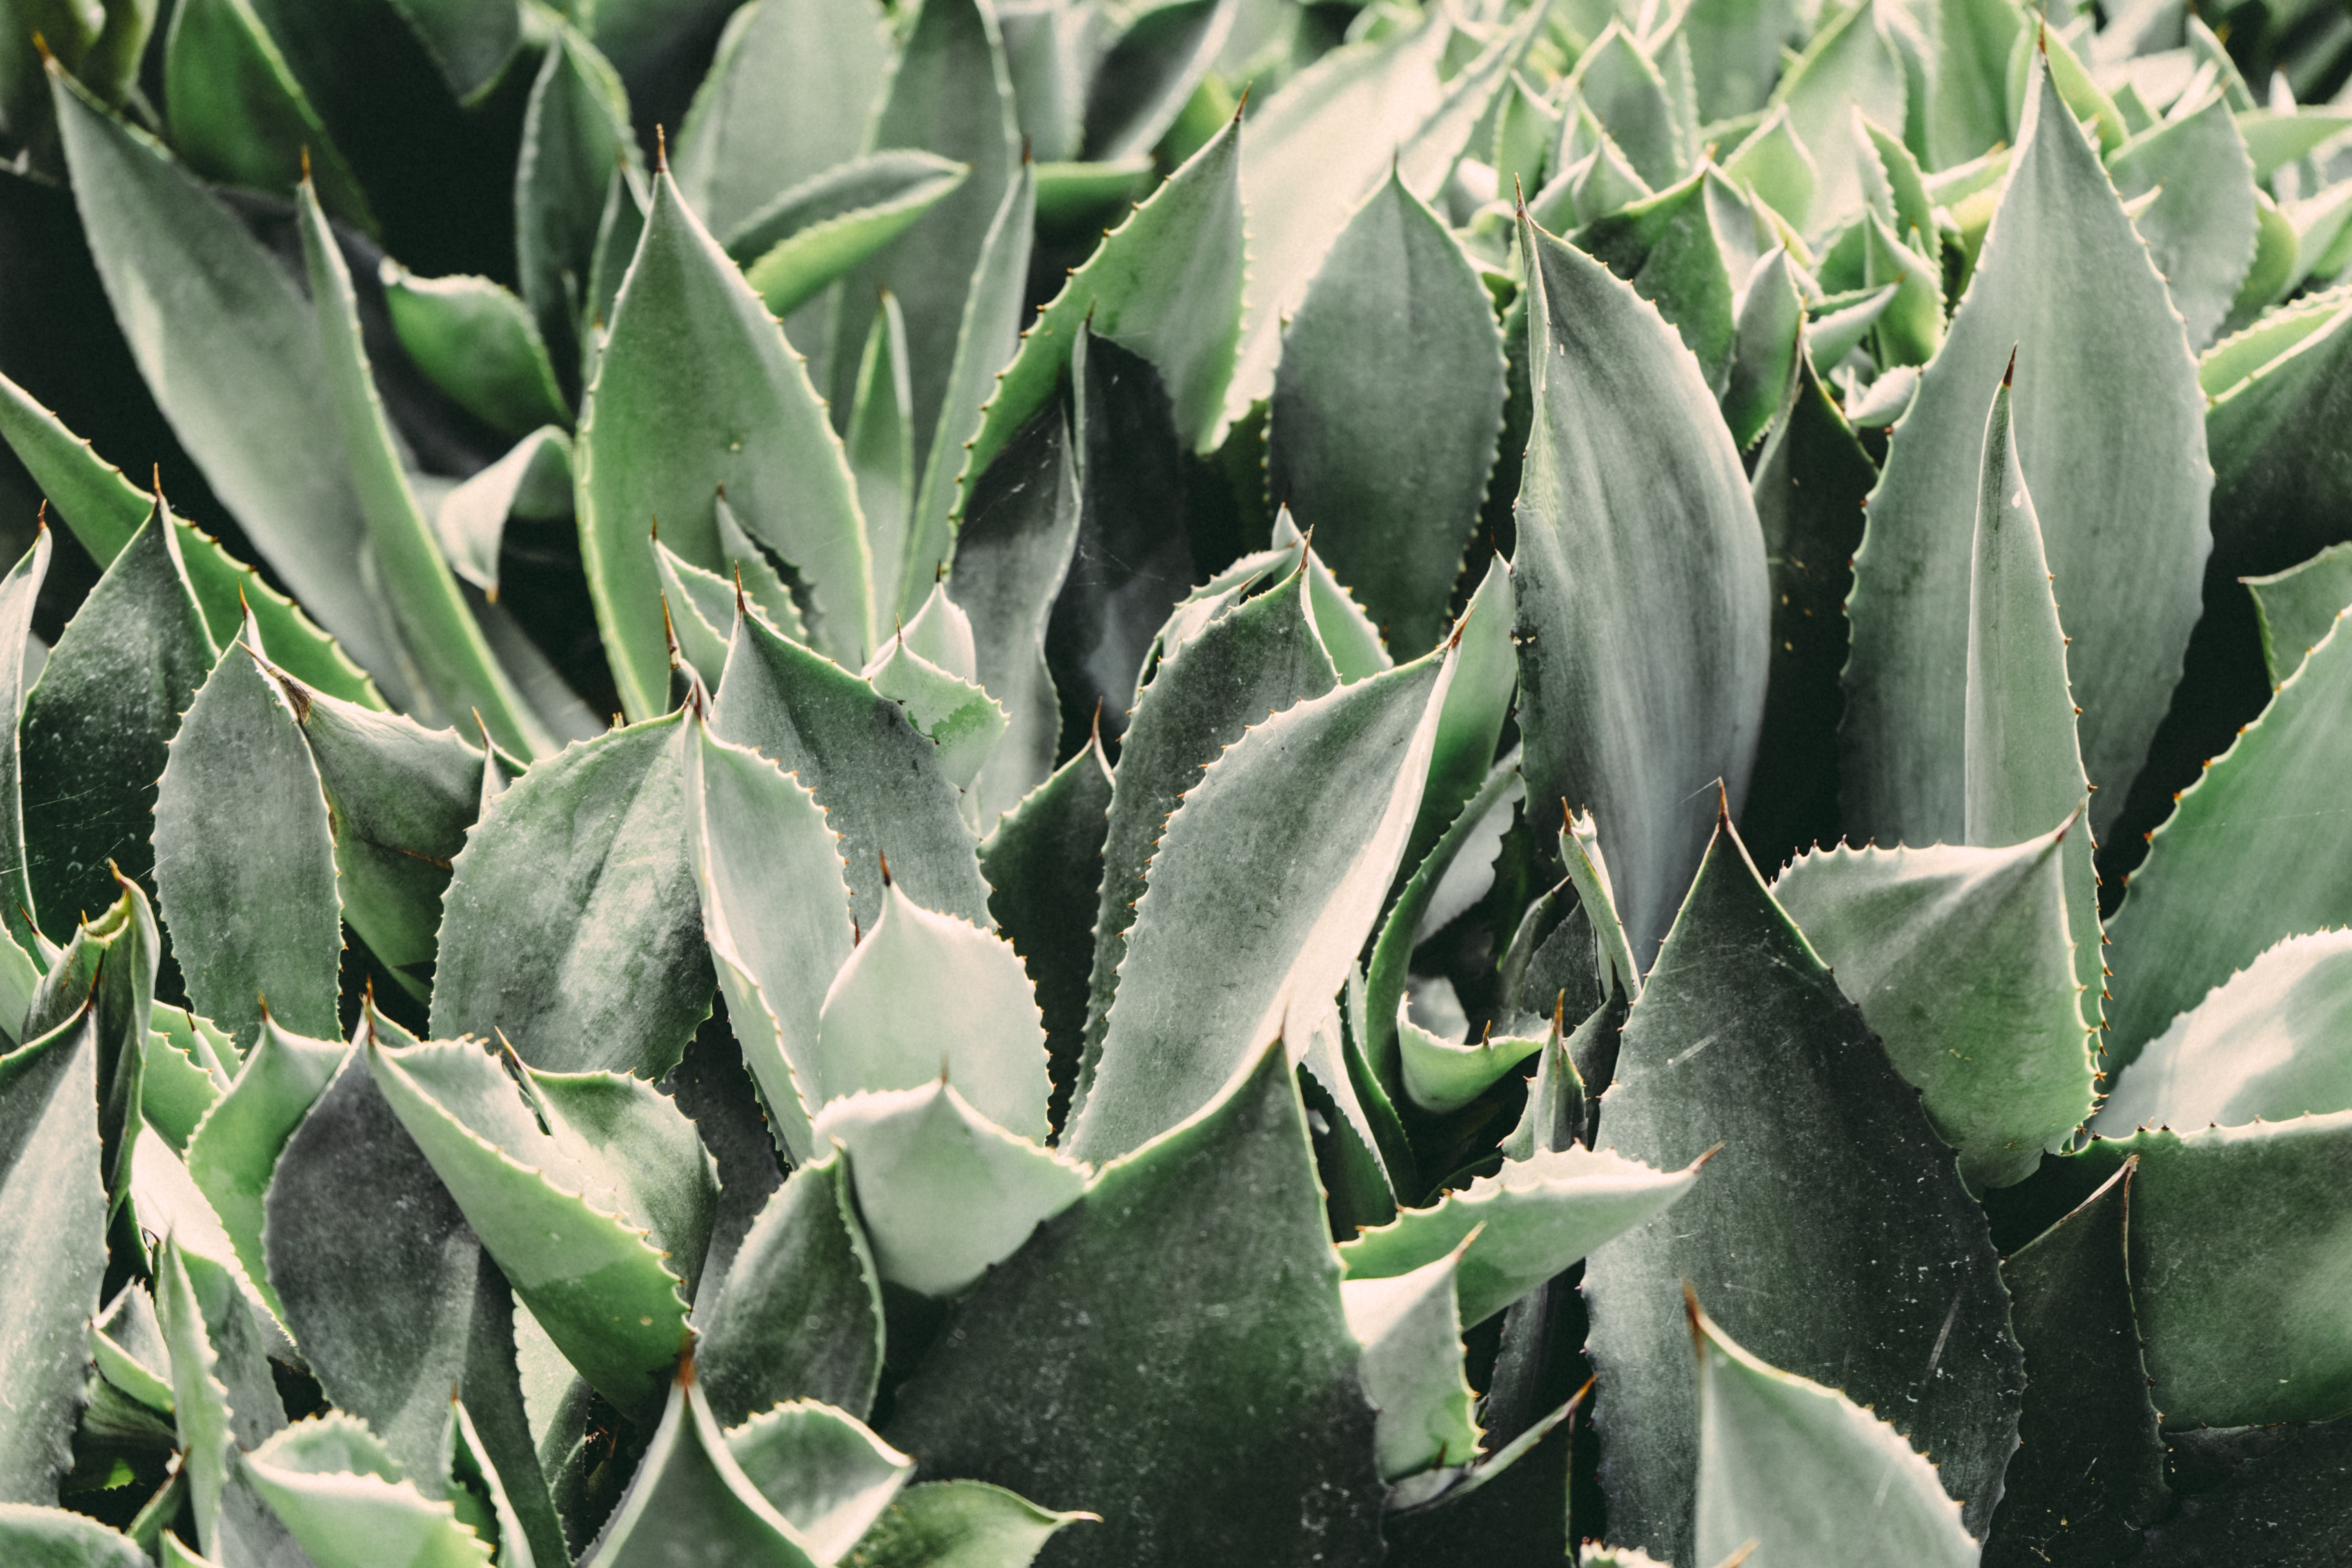 Leaves of spiky green succulent plants cover the garden